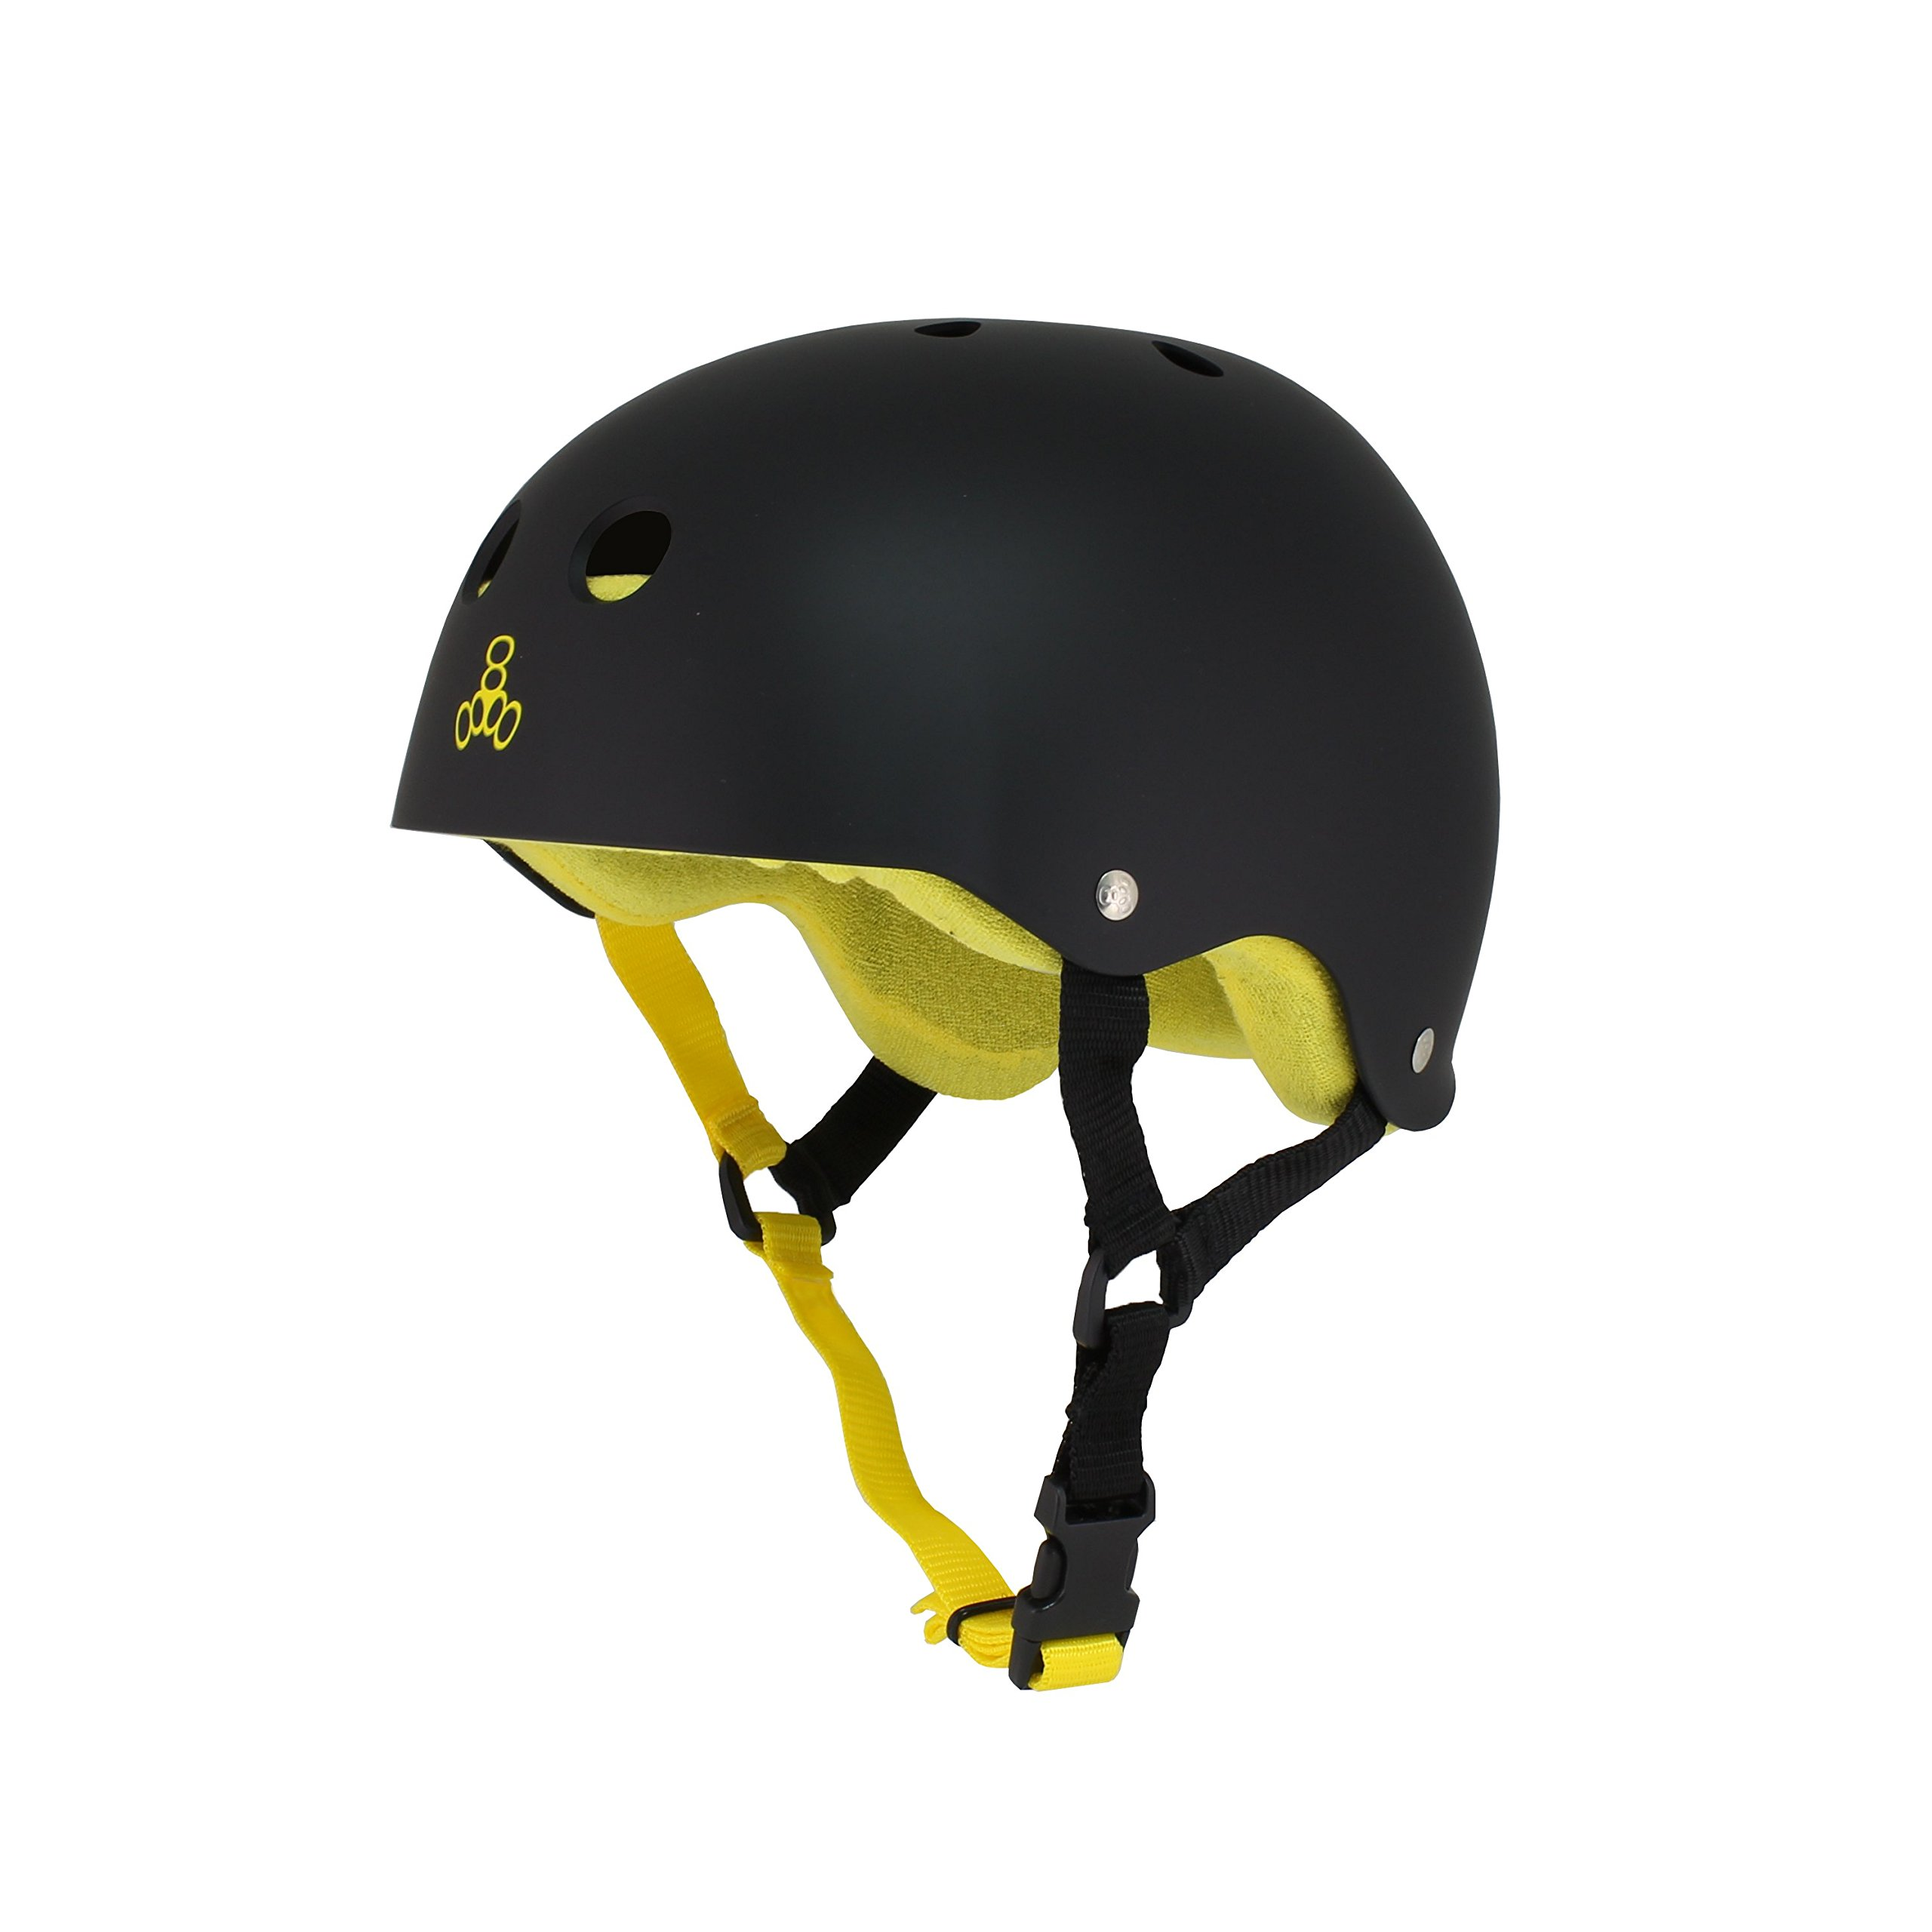 Triple Eight Sweatsave Helmet, Black/Yellow, Large